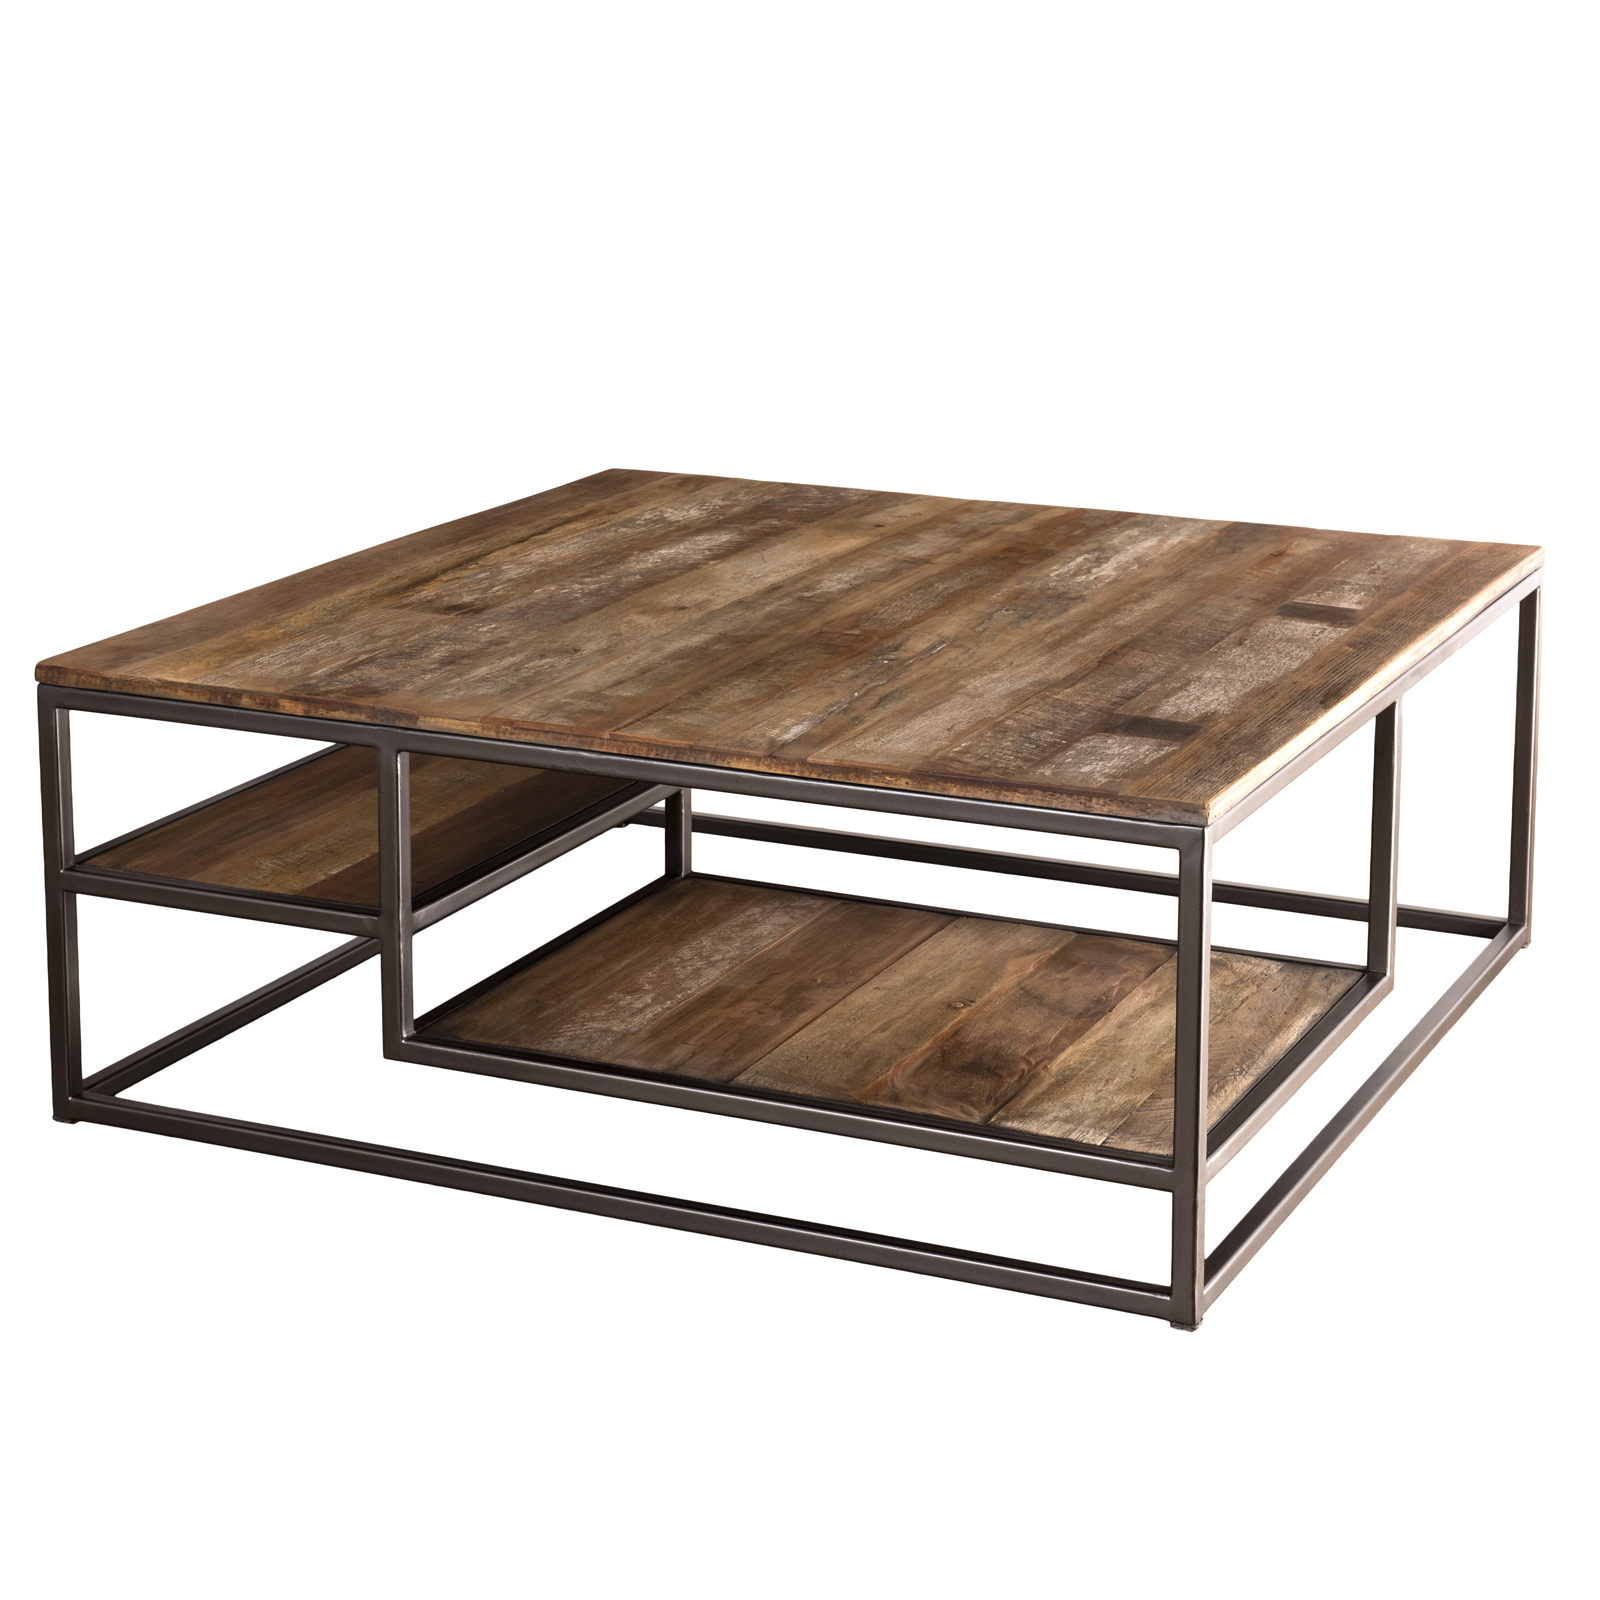 Table Basse Carree Teck Recycle Tablettes Swing Tables Basses